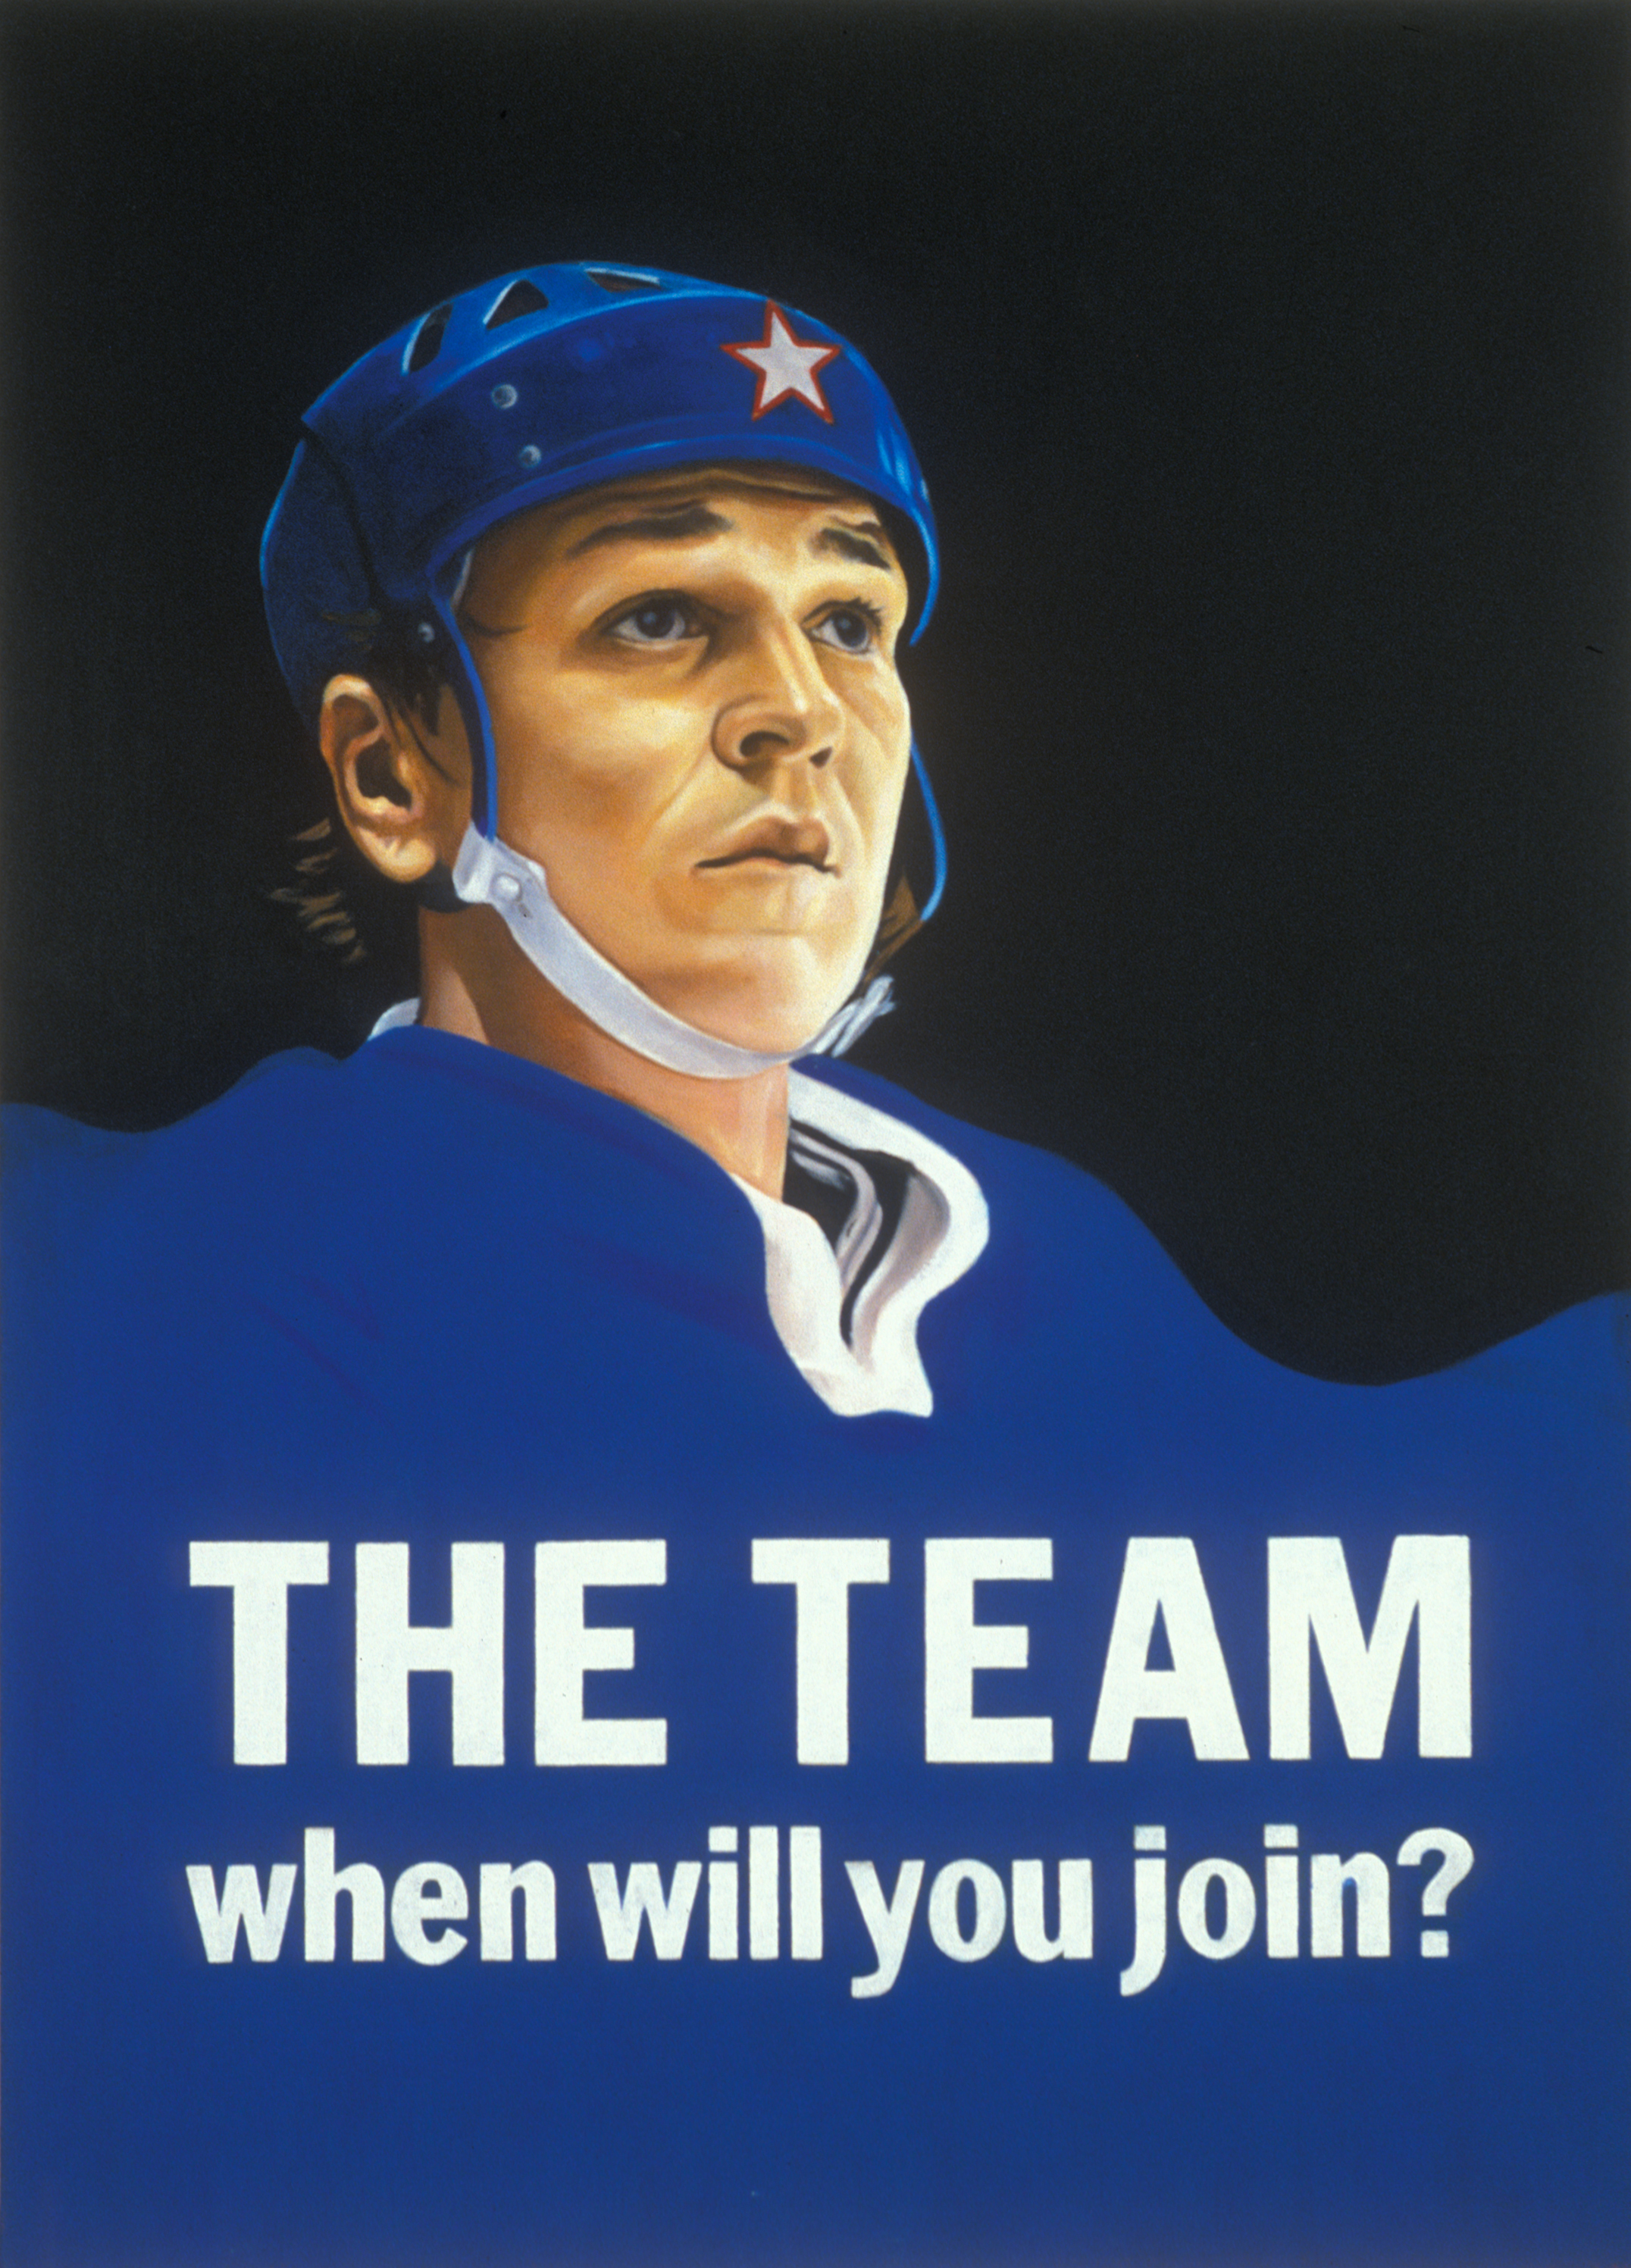 The Team: When Will You Join?